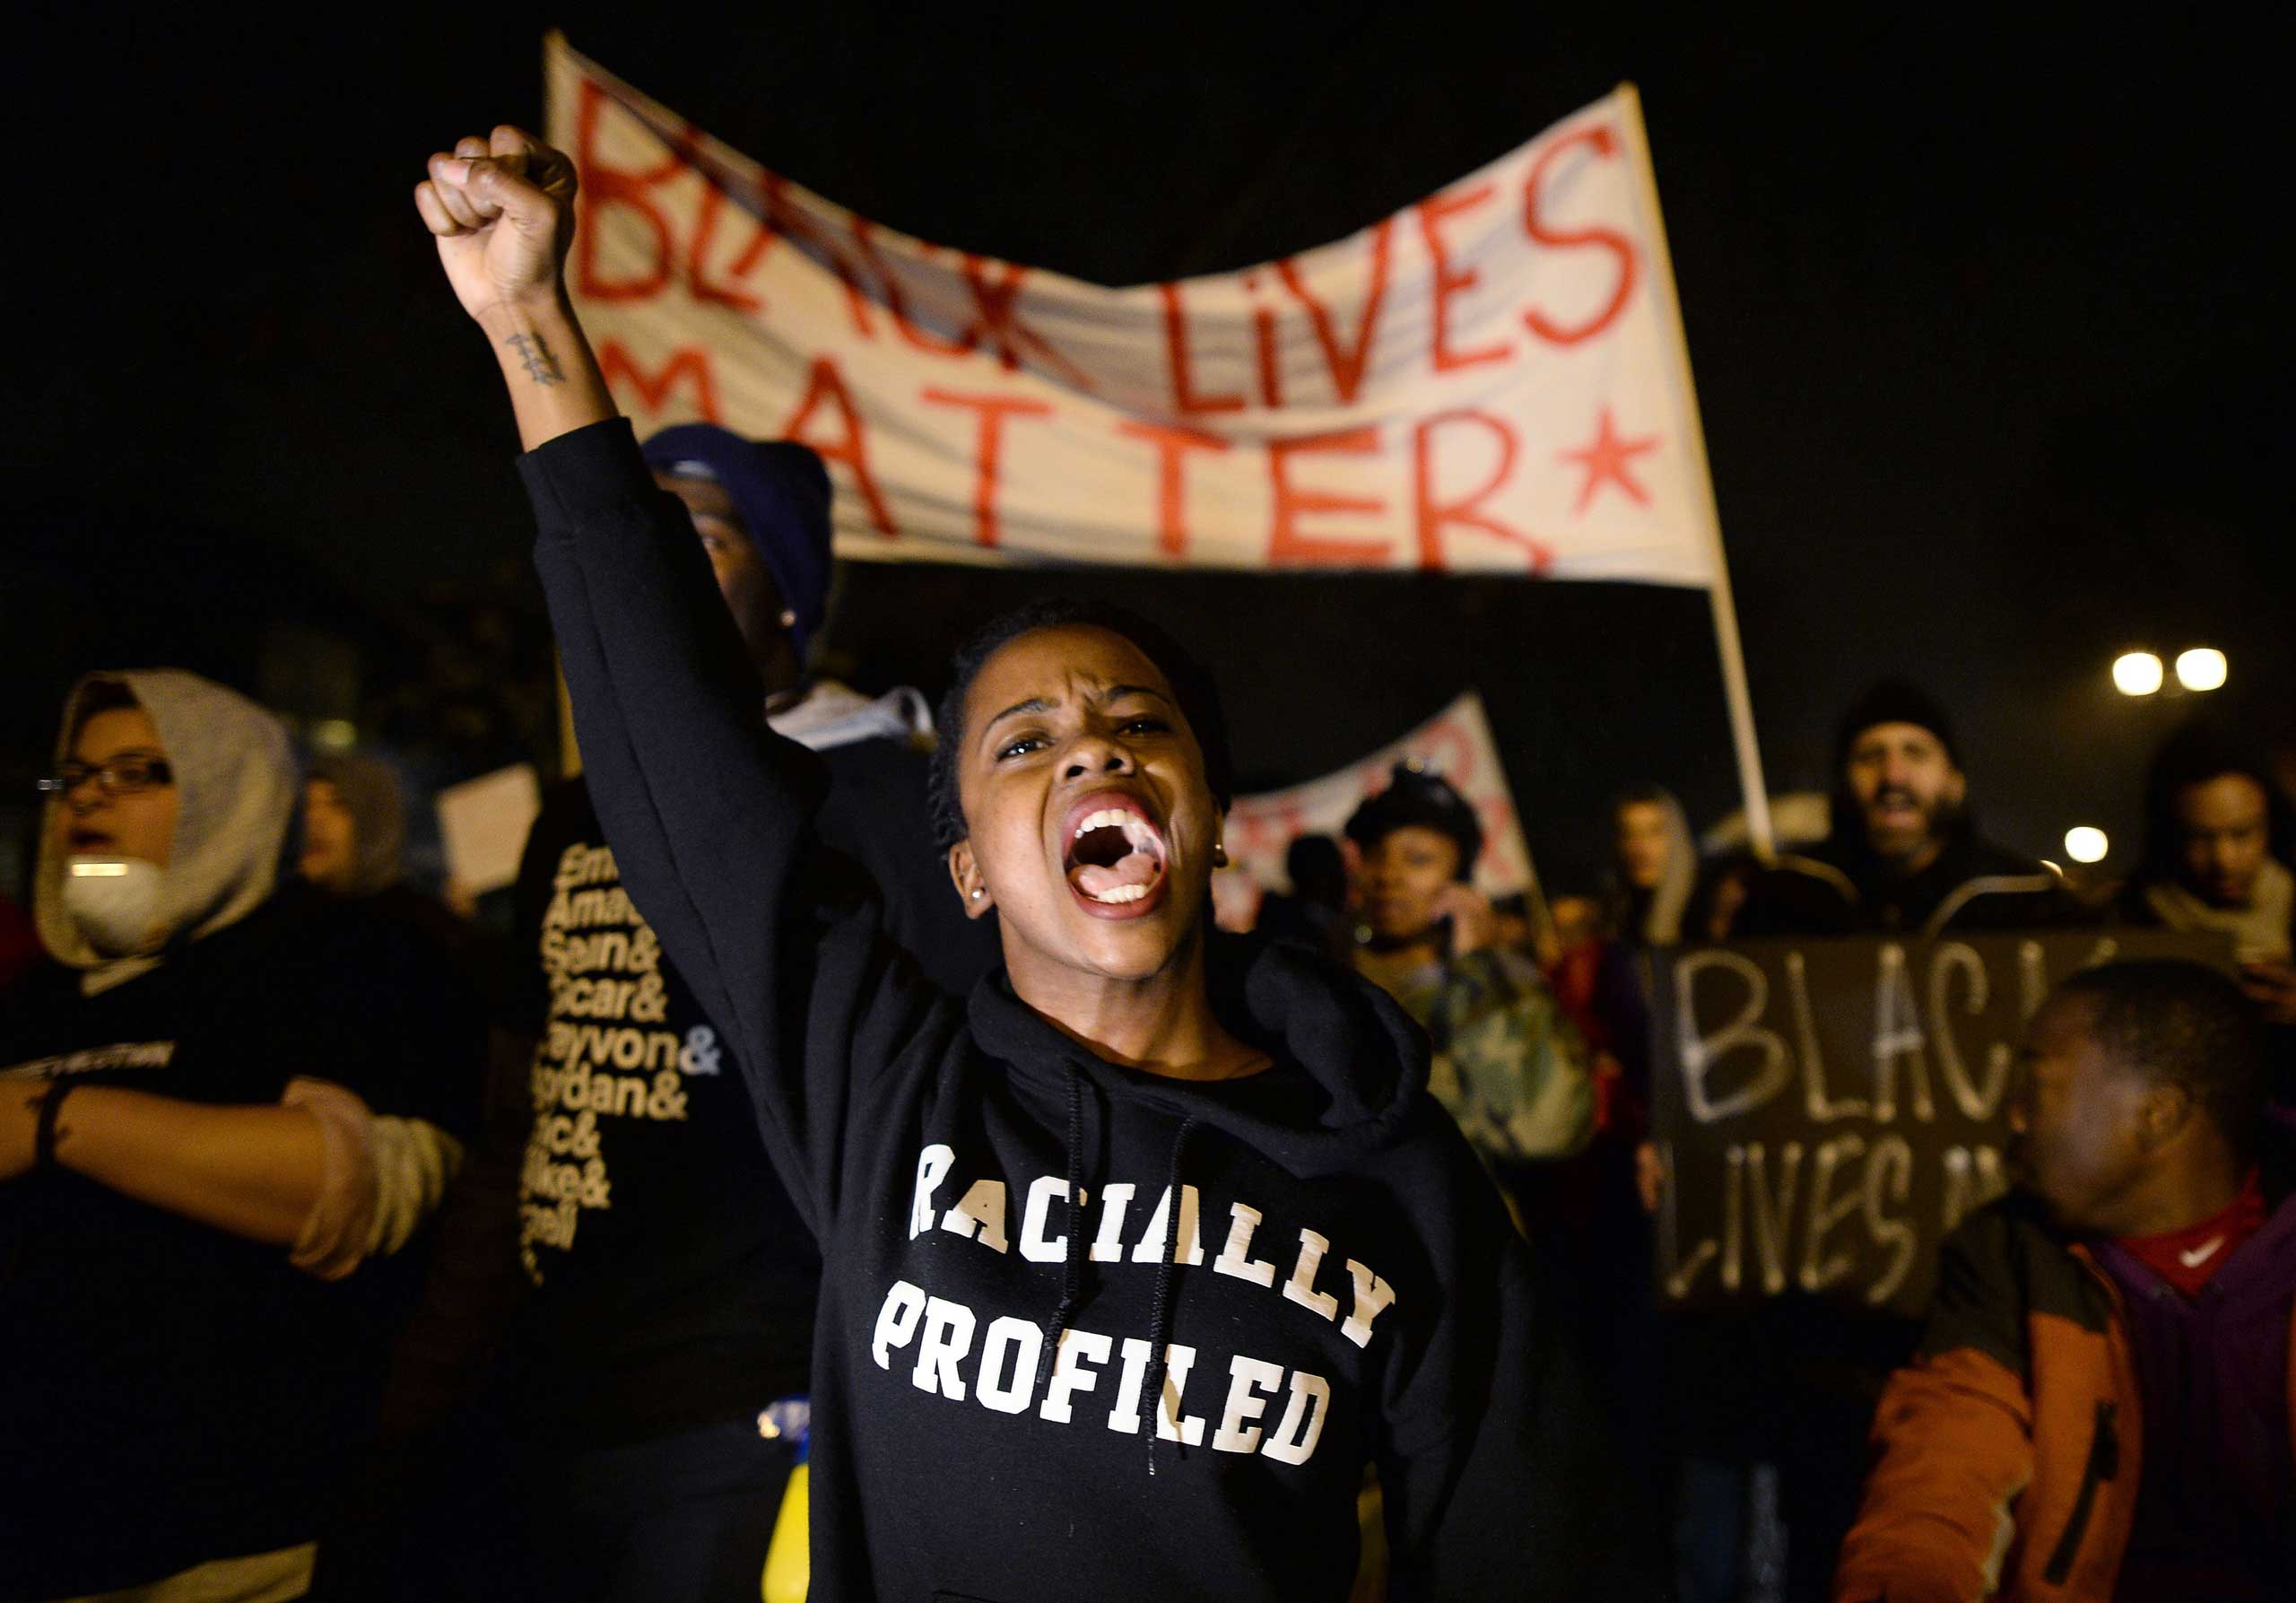 Demonstrators shout slogans during a march in St. Louis, on Nov. 23, 2014